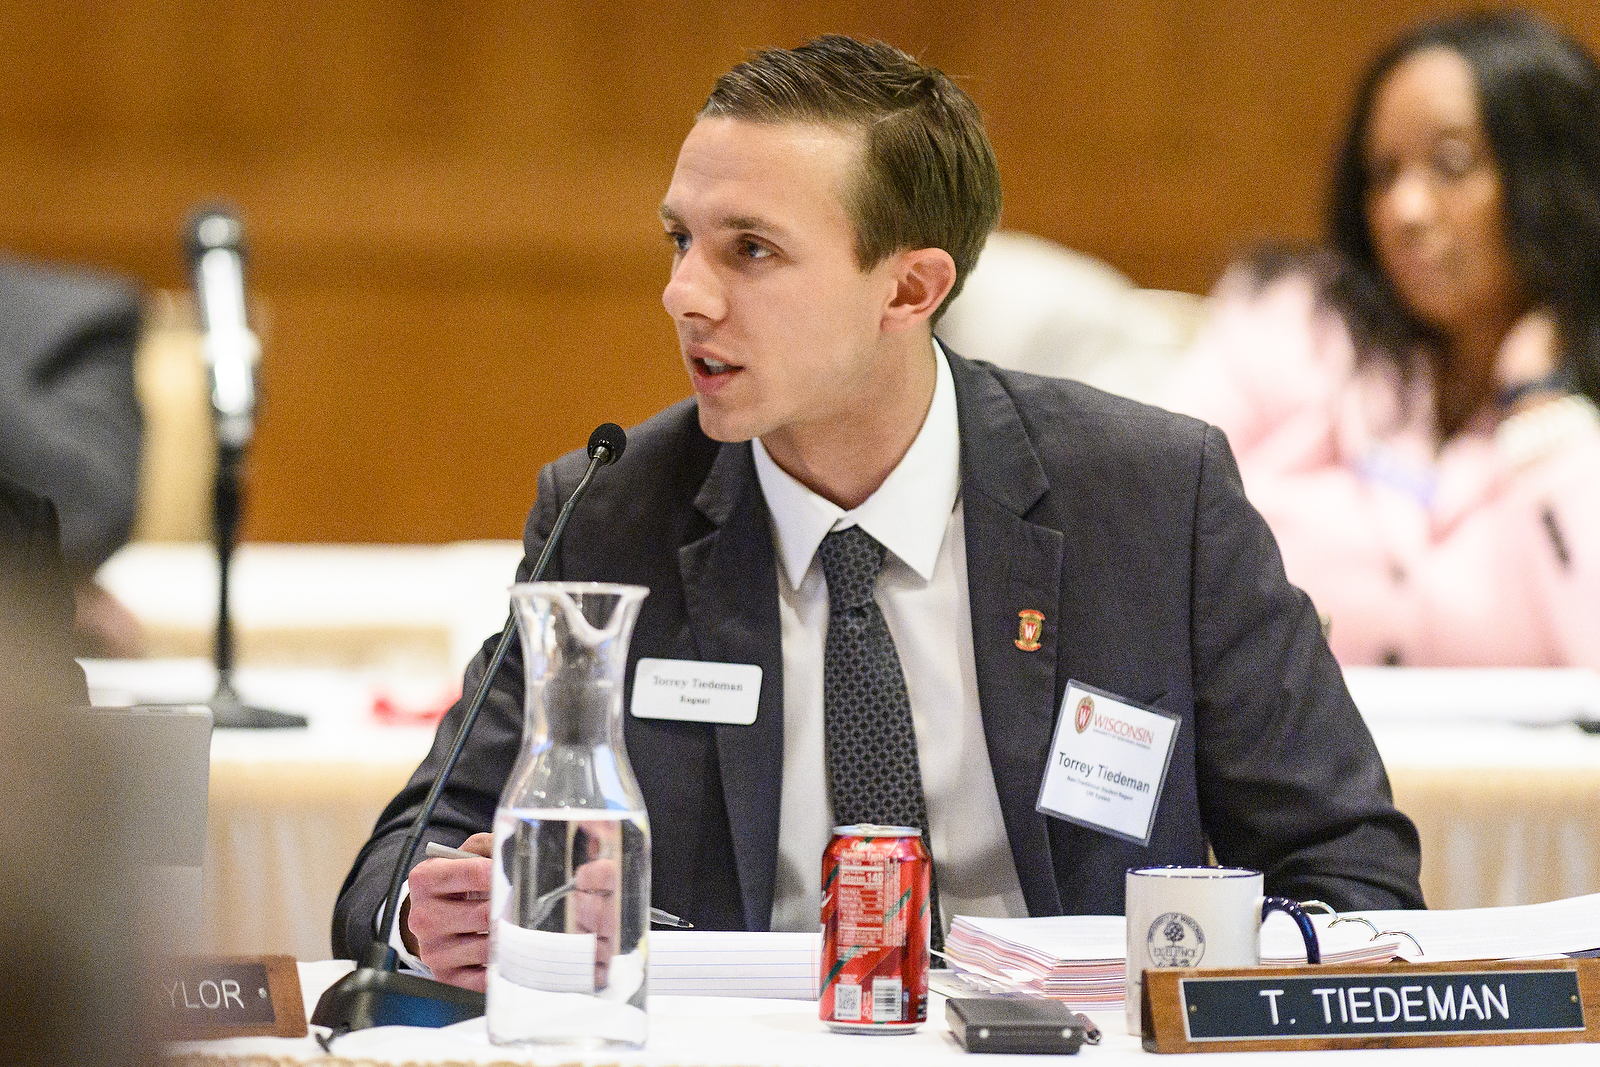 UW System Student Regent Torrey Tiedeman speaks at the UW System Board of Regents meeting hosted at Union South at the University of Wisconsin-Madison on Feb. 7, 2019. (Photo by Bryce Richter /UW-Madison)